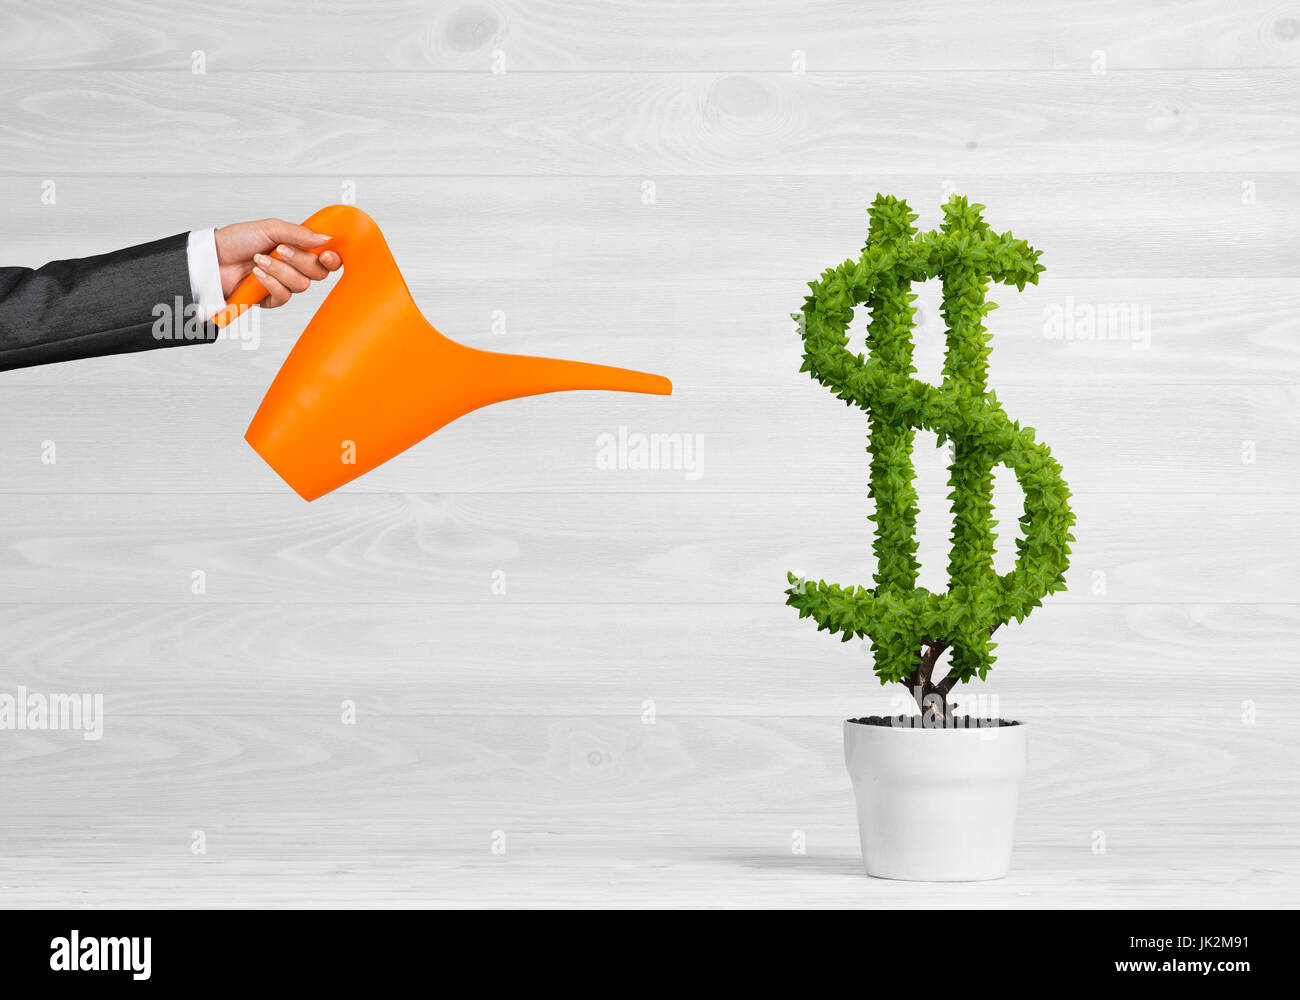 Concept of investment income and growth with money tree in pot - Stock Image